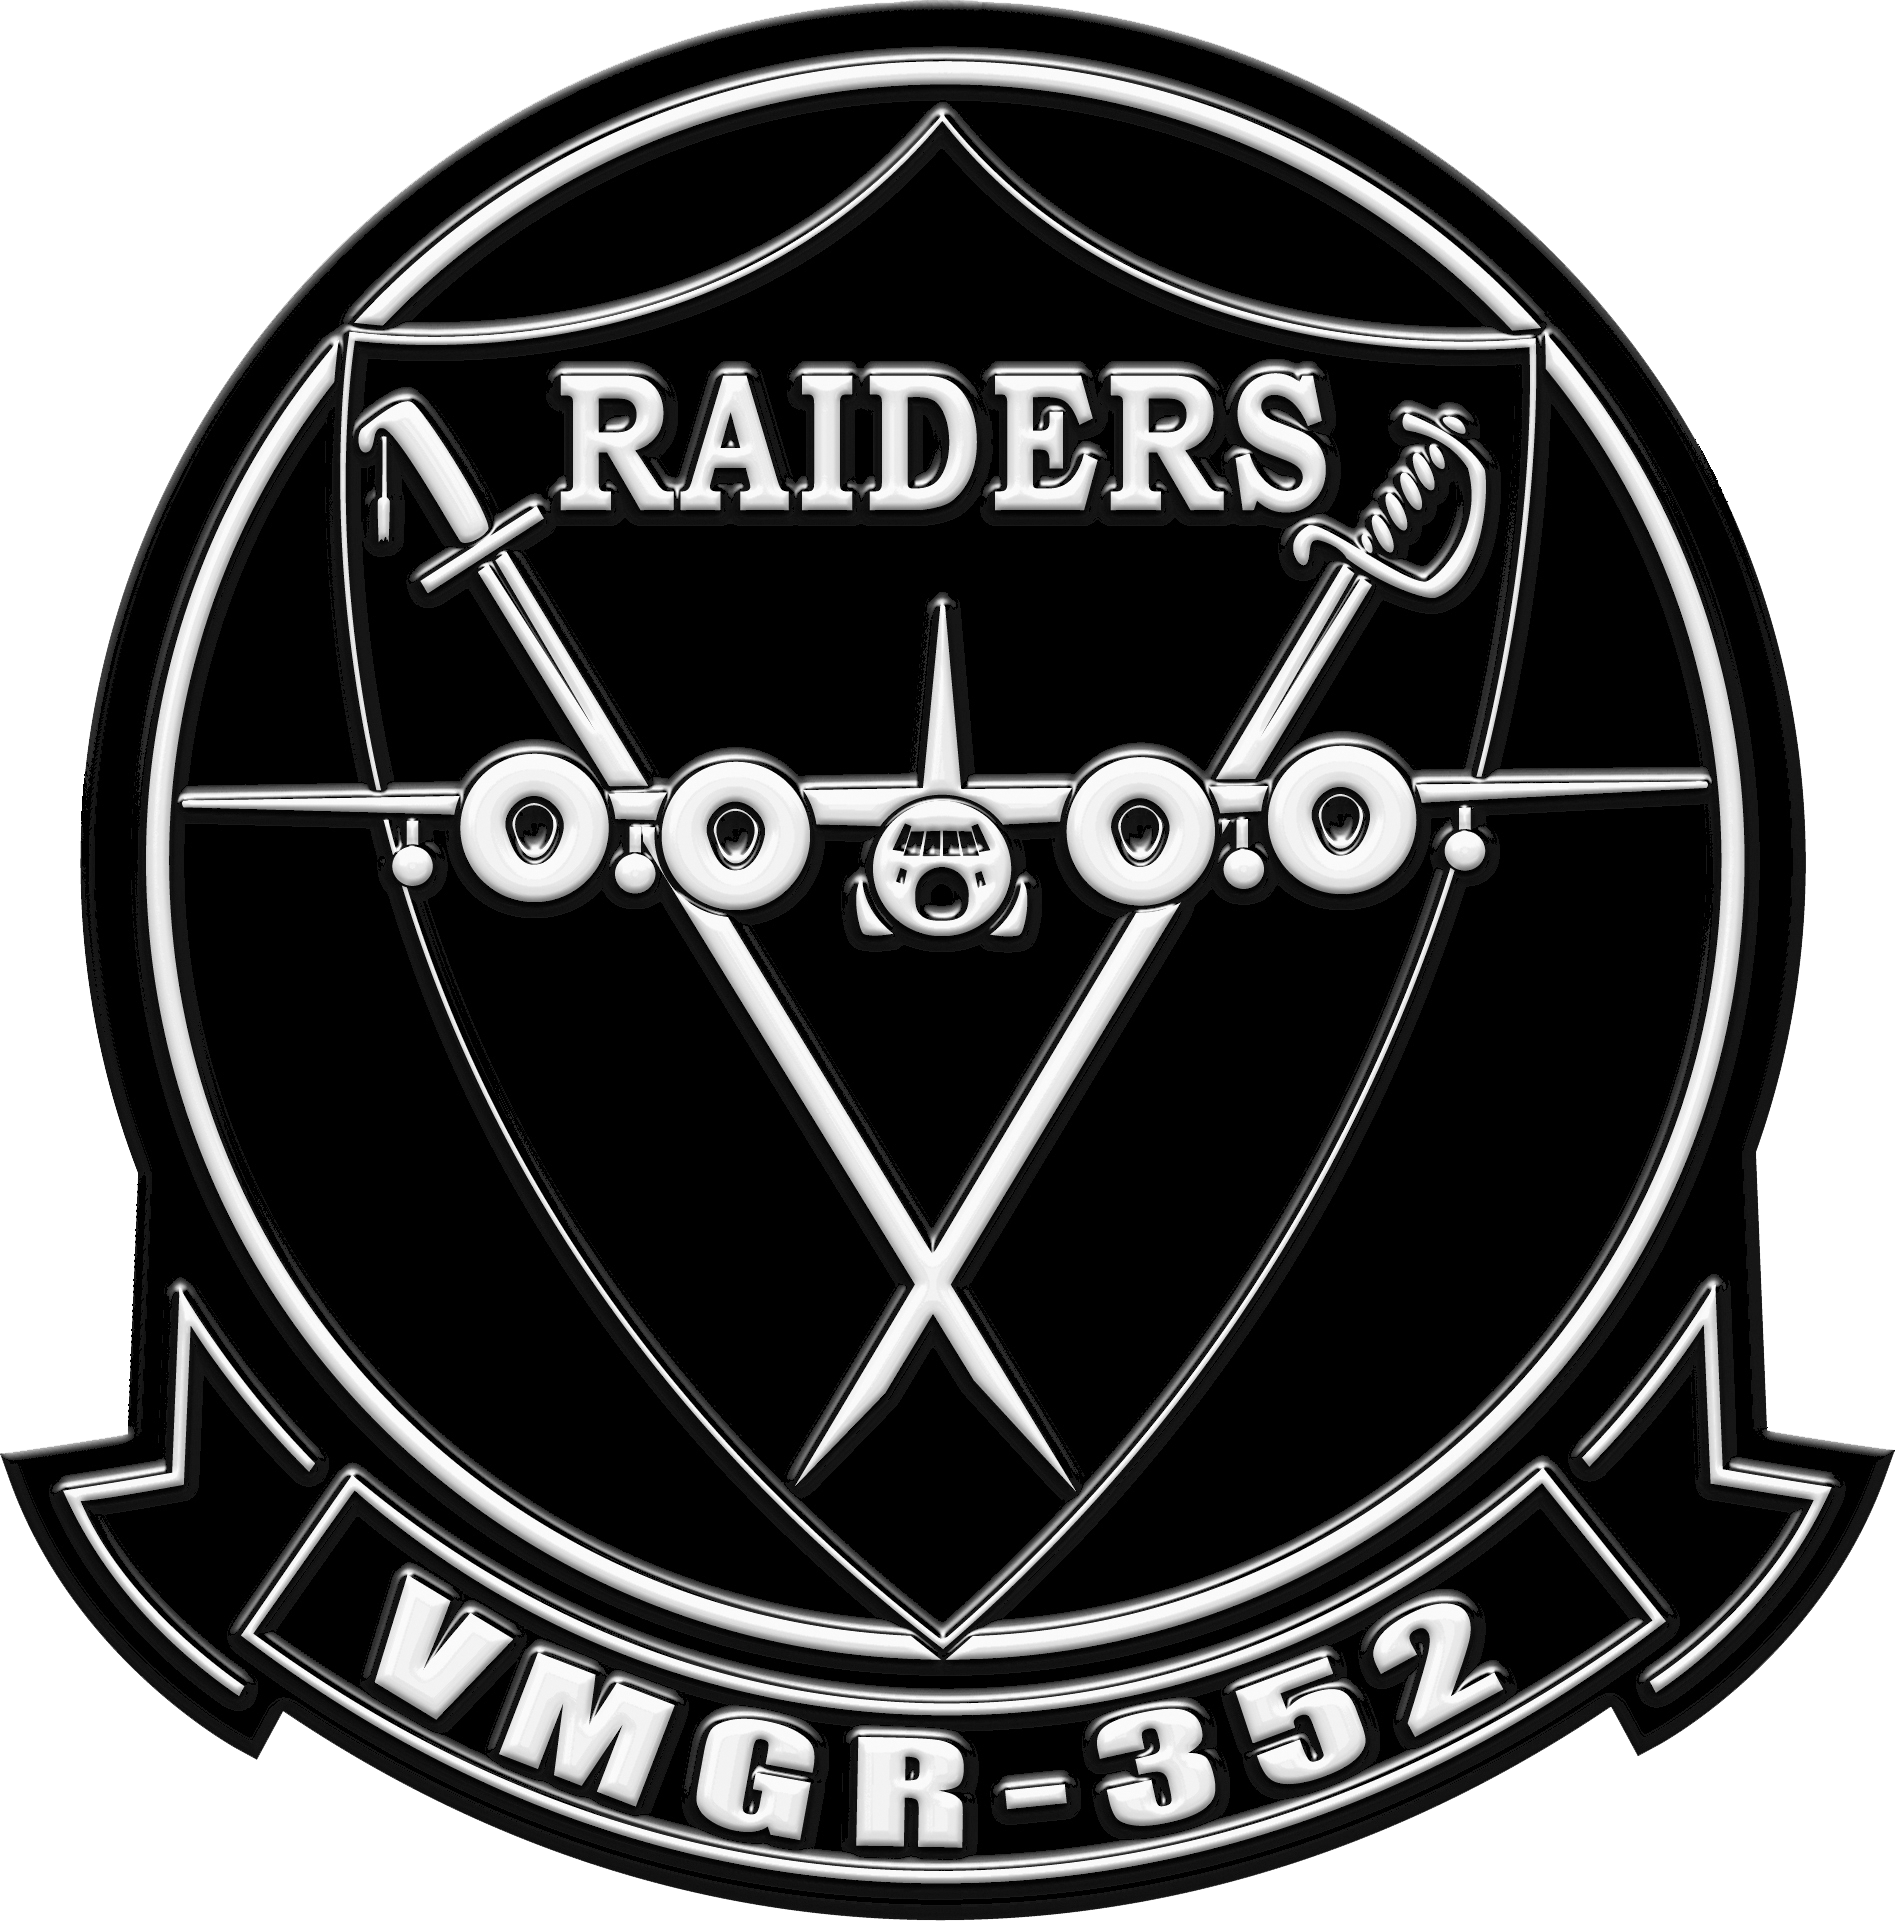 File:VMGR-352 squadron insignia.png - Wikimedia Commons